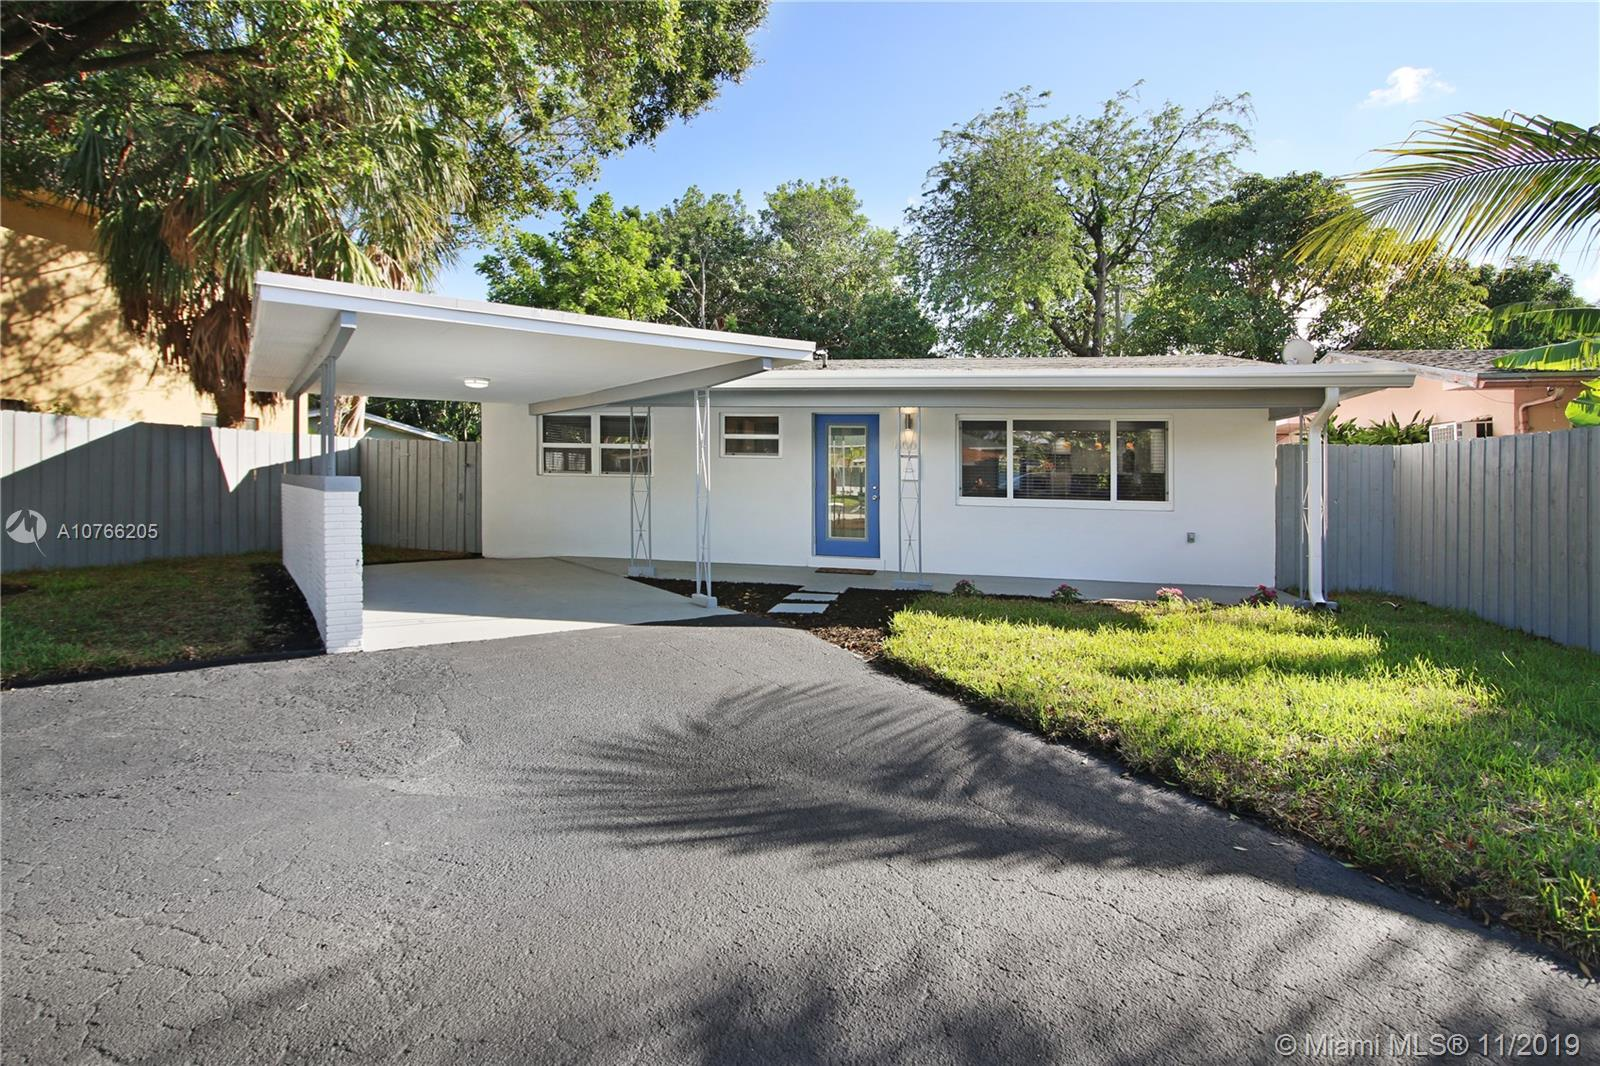 """FULLY REMODELED 2/2 with carport located just a short walk from Wilton Manors shoppes and restaurants!! Home features: NEW roof, NEW impact windows, NEW A/C and duct work, NEW hot water heater, NEW electrical panels, and brand NEW washer and dryer. Open concept kitchen has been fully upgraded with: waterfall edge quartz countertops, white shaker cabinets, stainless steel appliances, and custom lighting. Both bathrooms have: new fixtures and vanities, new tile, bluetooth speaker fans, new tub (second bath), new frameless shower glass master bath (to be installed). Entire home features beautiful new 24"""" marble-look porcelain tile and 5.5"""" baseboards throughout. Fenced yard is private and perfect for your pets and for entertaining, with plenty of room for a pool! This home is a MUST SEE!!"""